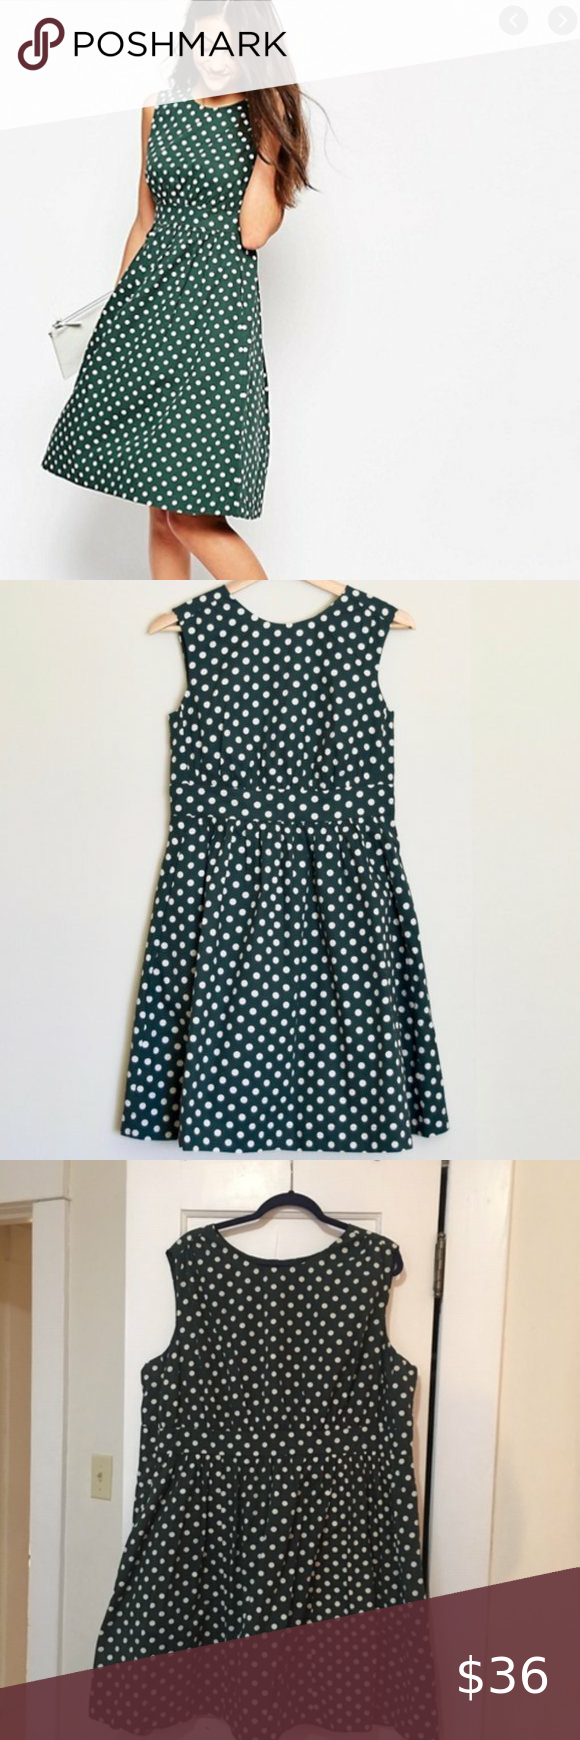 Emily & Fin Green Polka Dot Fit & Flare Dress This is the classic, retro vintage inspired